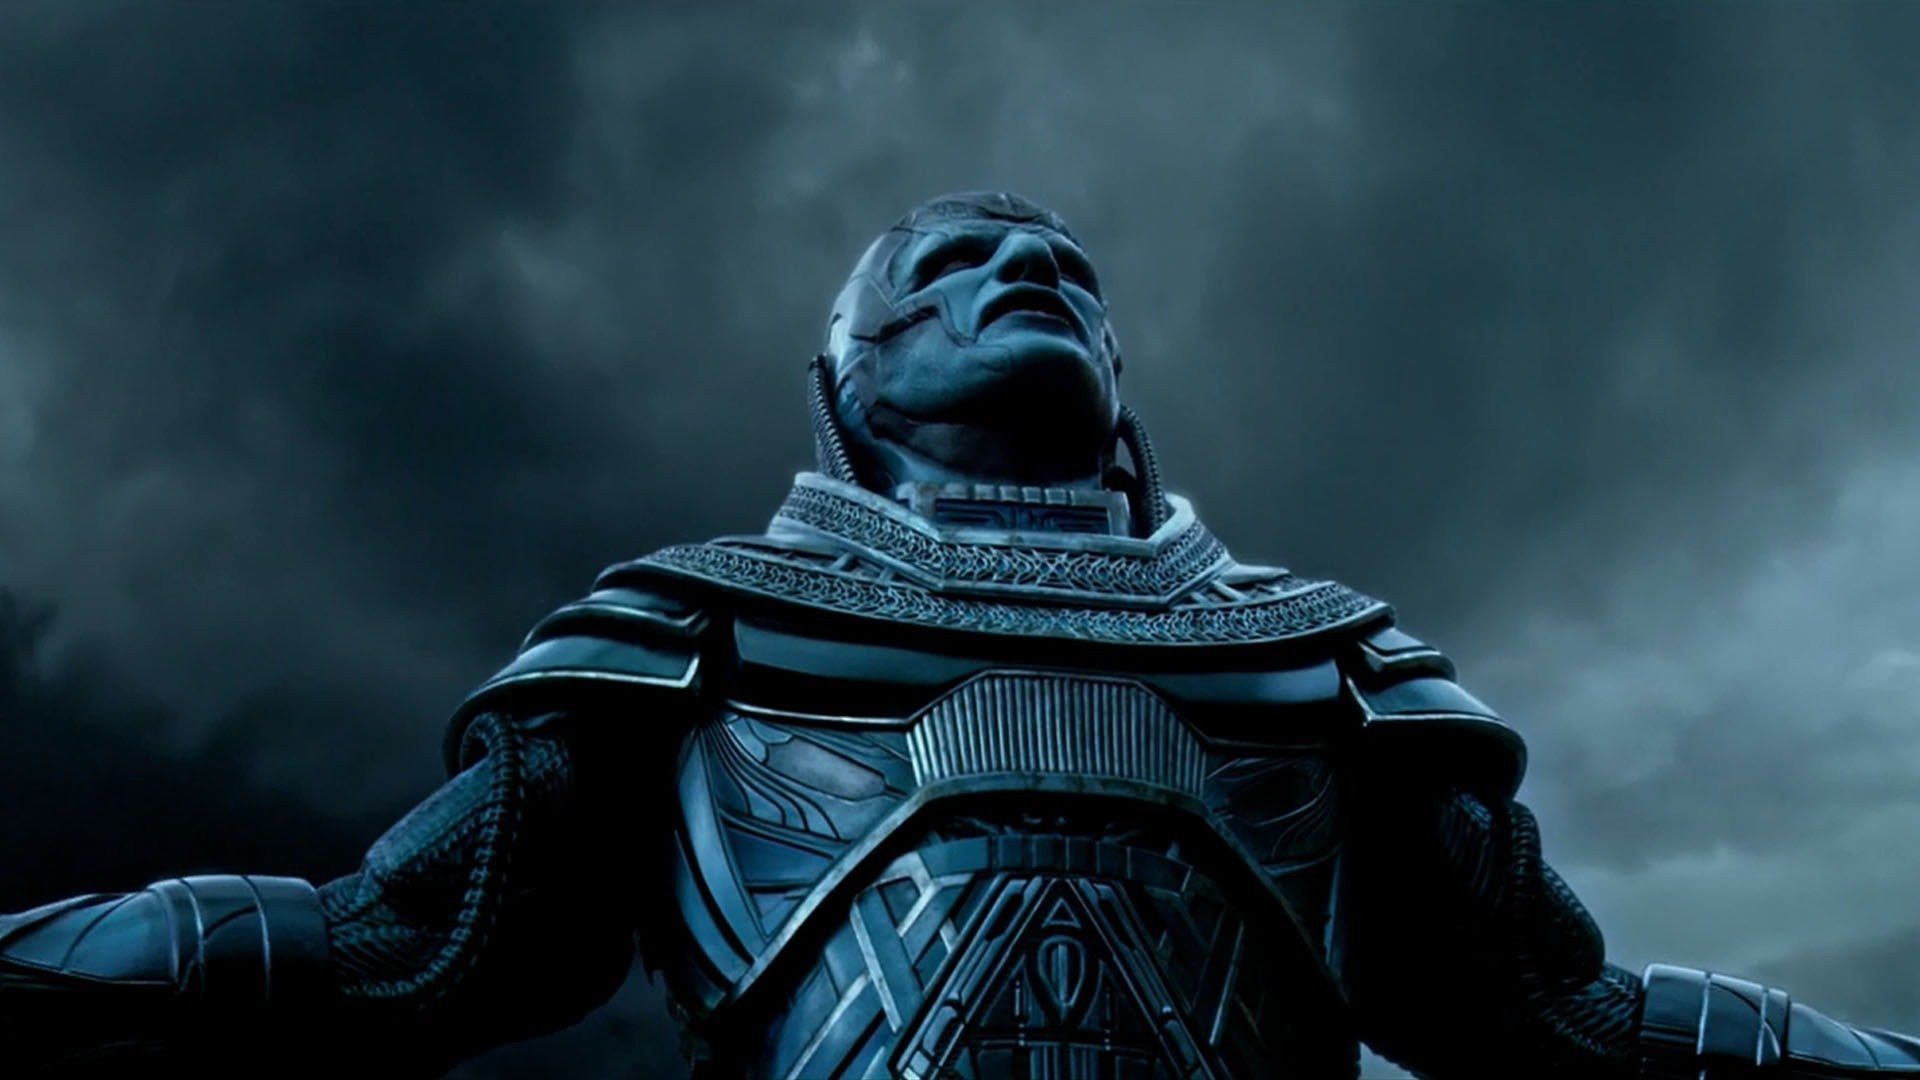 x men apocalypse wallpapers ·①